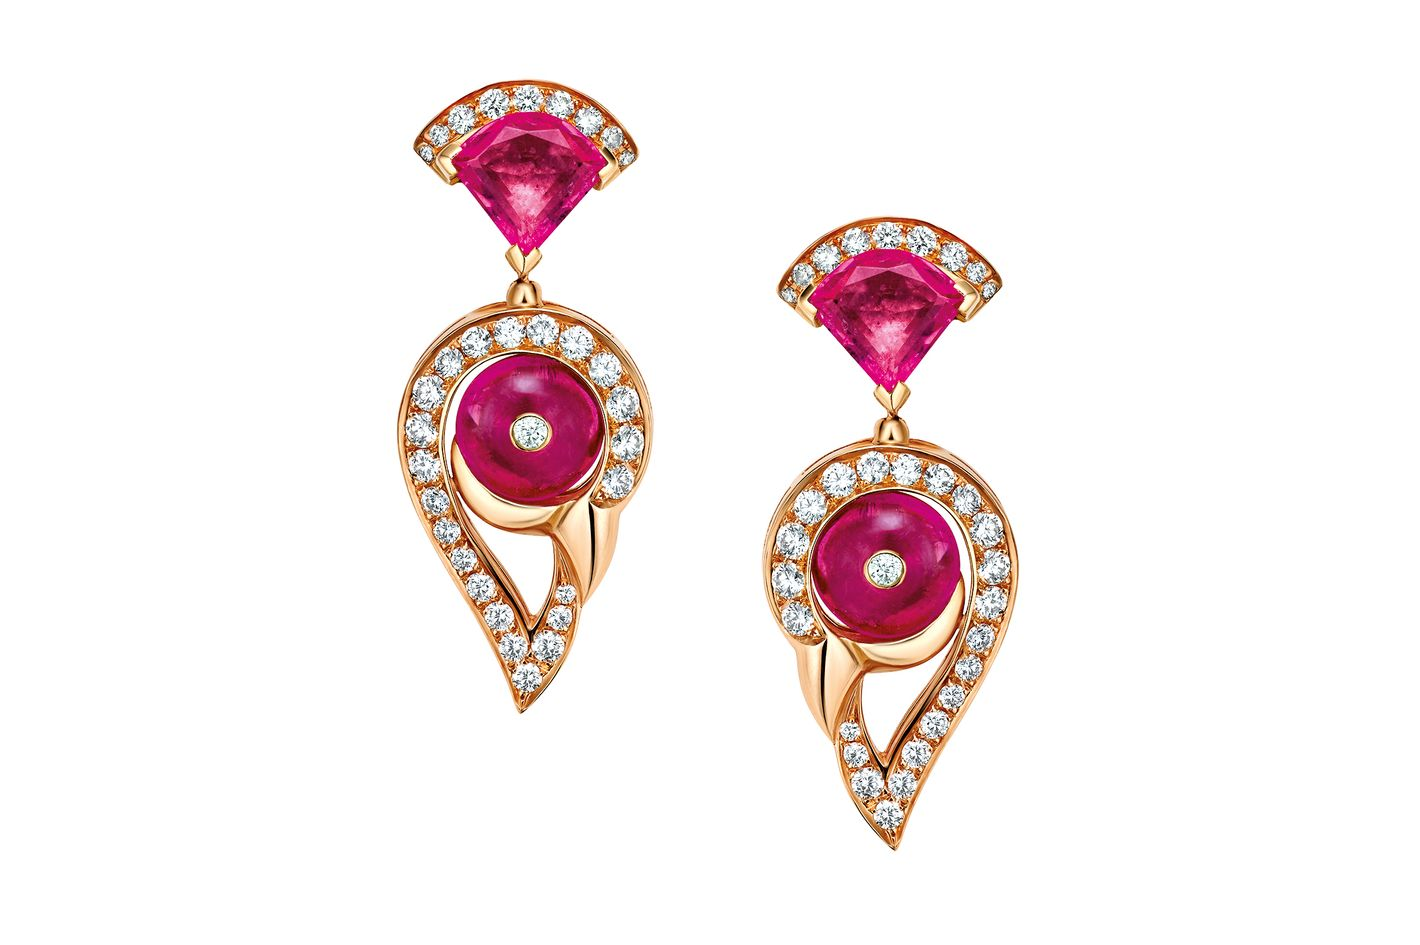 Divas' Dream Earrings